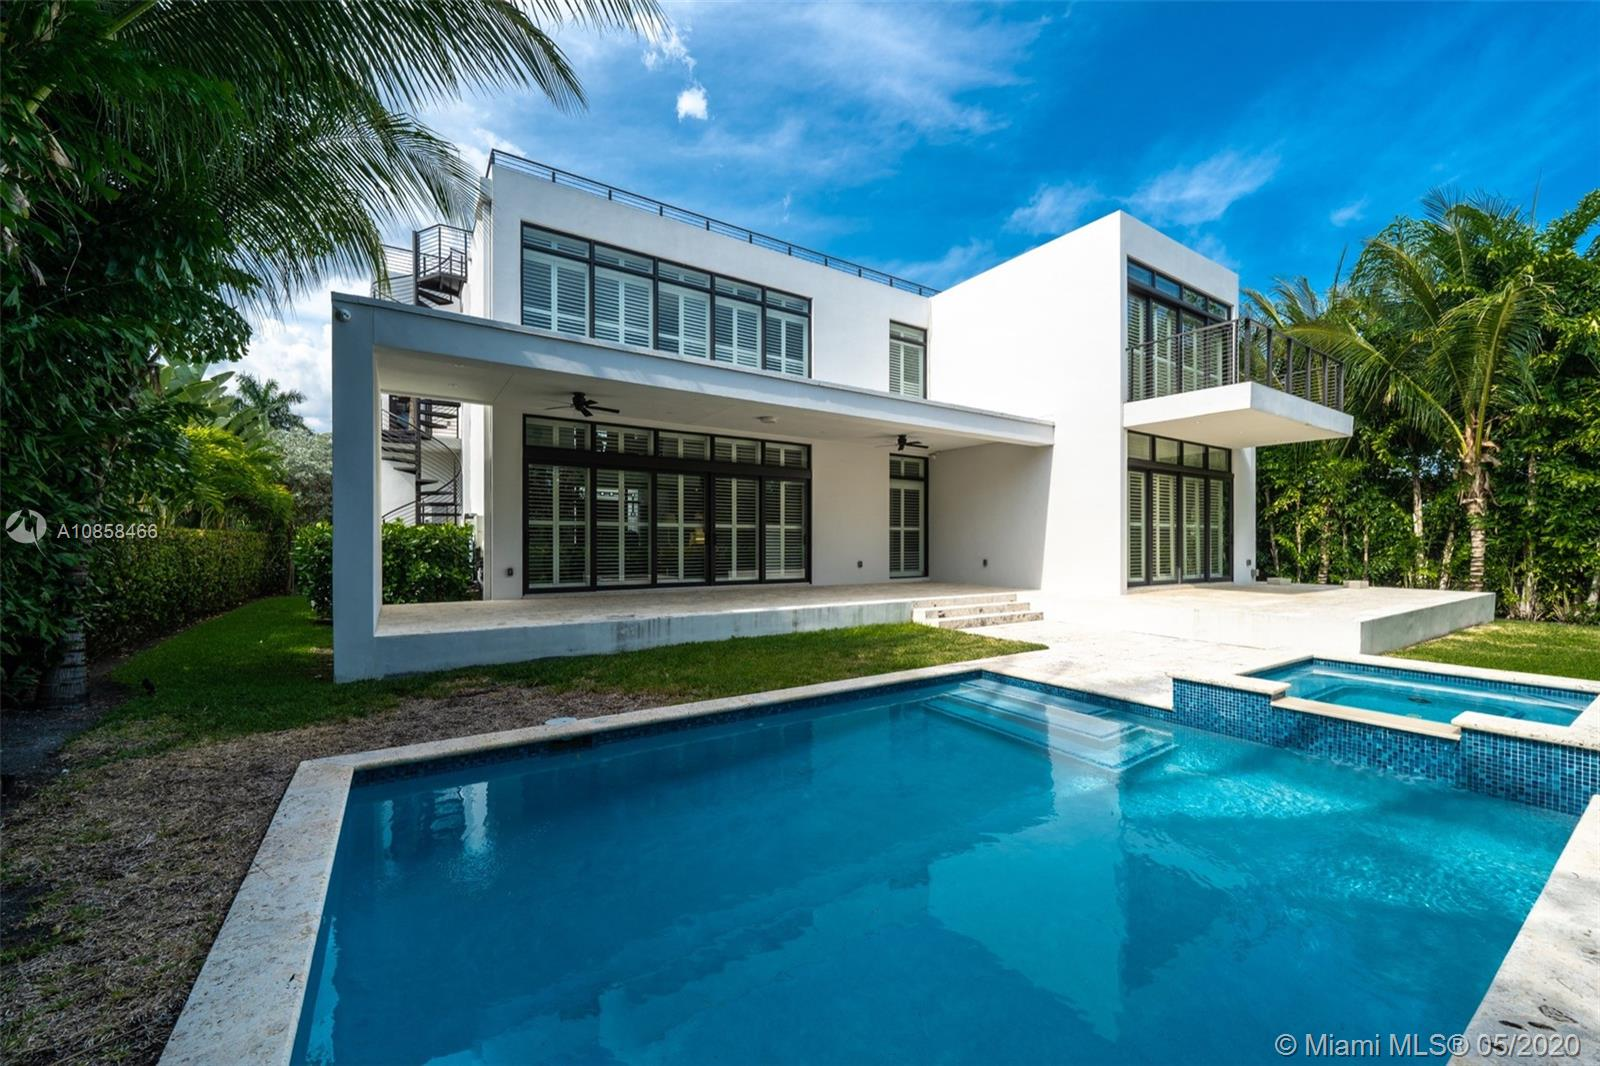 This spectacular gem is nestled in the beautiful Bay Harbor Islands community.  Contemporary designed, 2-story home featuring 6 bedrooms and 6.5 Bath + a Study.  Almost 5,000 sq ft under air.  Gorgeous floor to ceiling impact windows allow for plenty of natural lighting.  Enjoy the outdoors in a sprawling rooftop terrace with partial water views.  Virtually staged images were uploaded to show the potential.  Large modern kitchen with a cook top and built-in Sub Zero.  The enormous living room with double volume ceilings is bright, welcoming and overlooks the  pool/spa combo. Home features an elevator and 2 Car Garage with circular driveway.